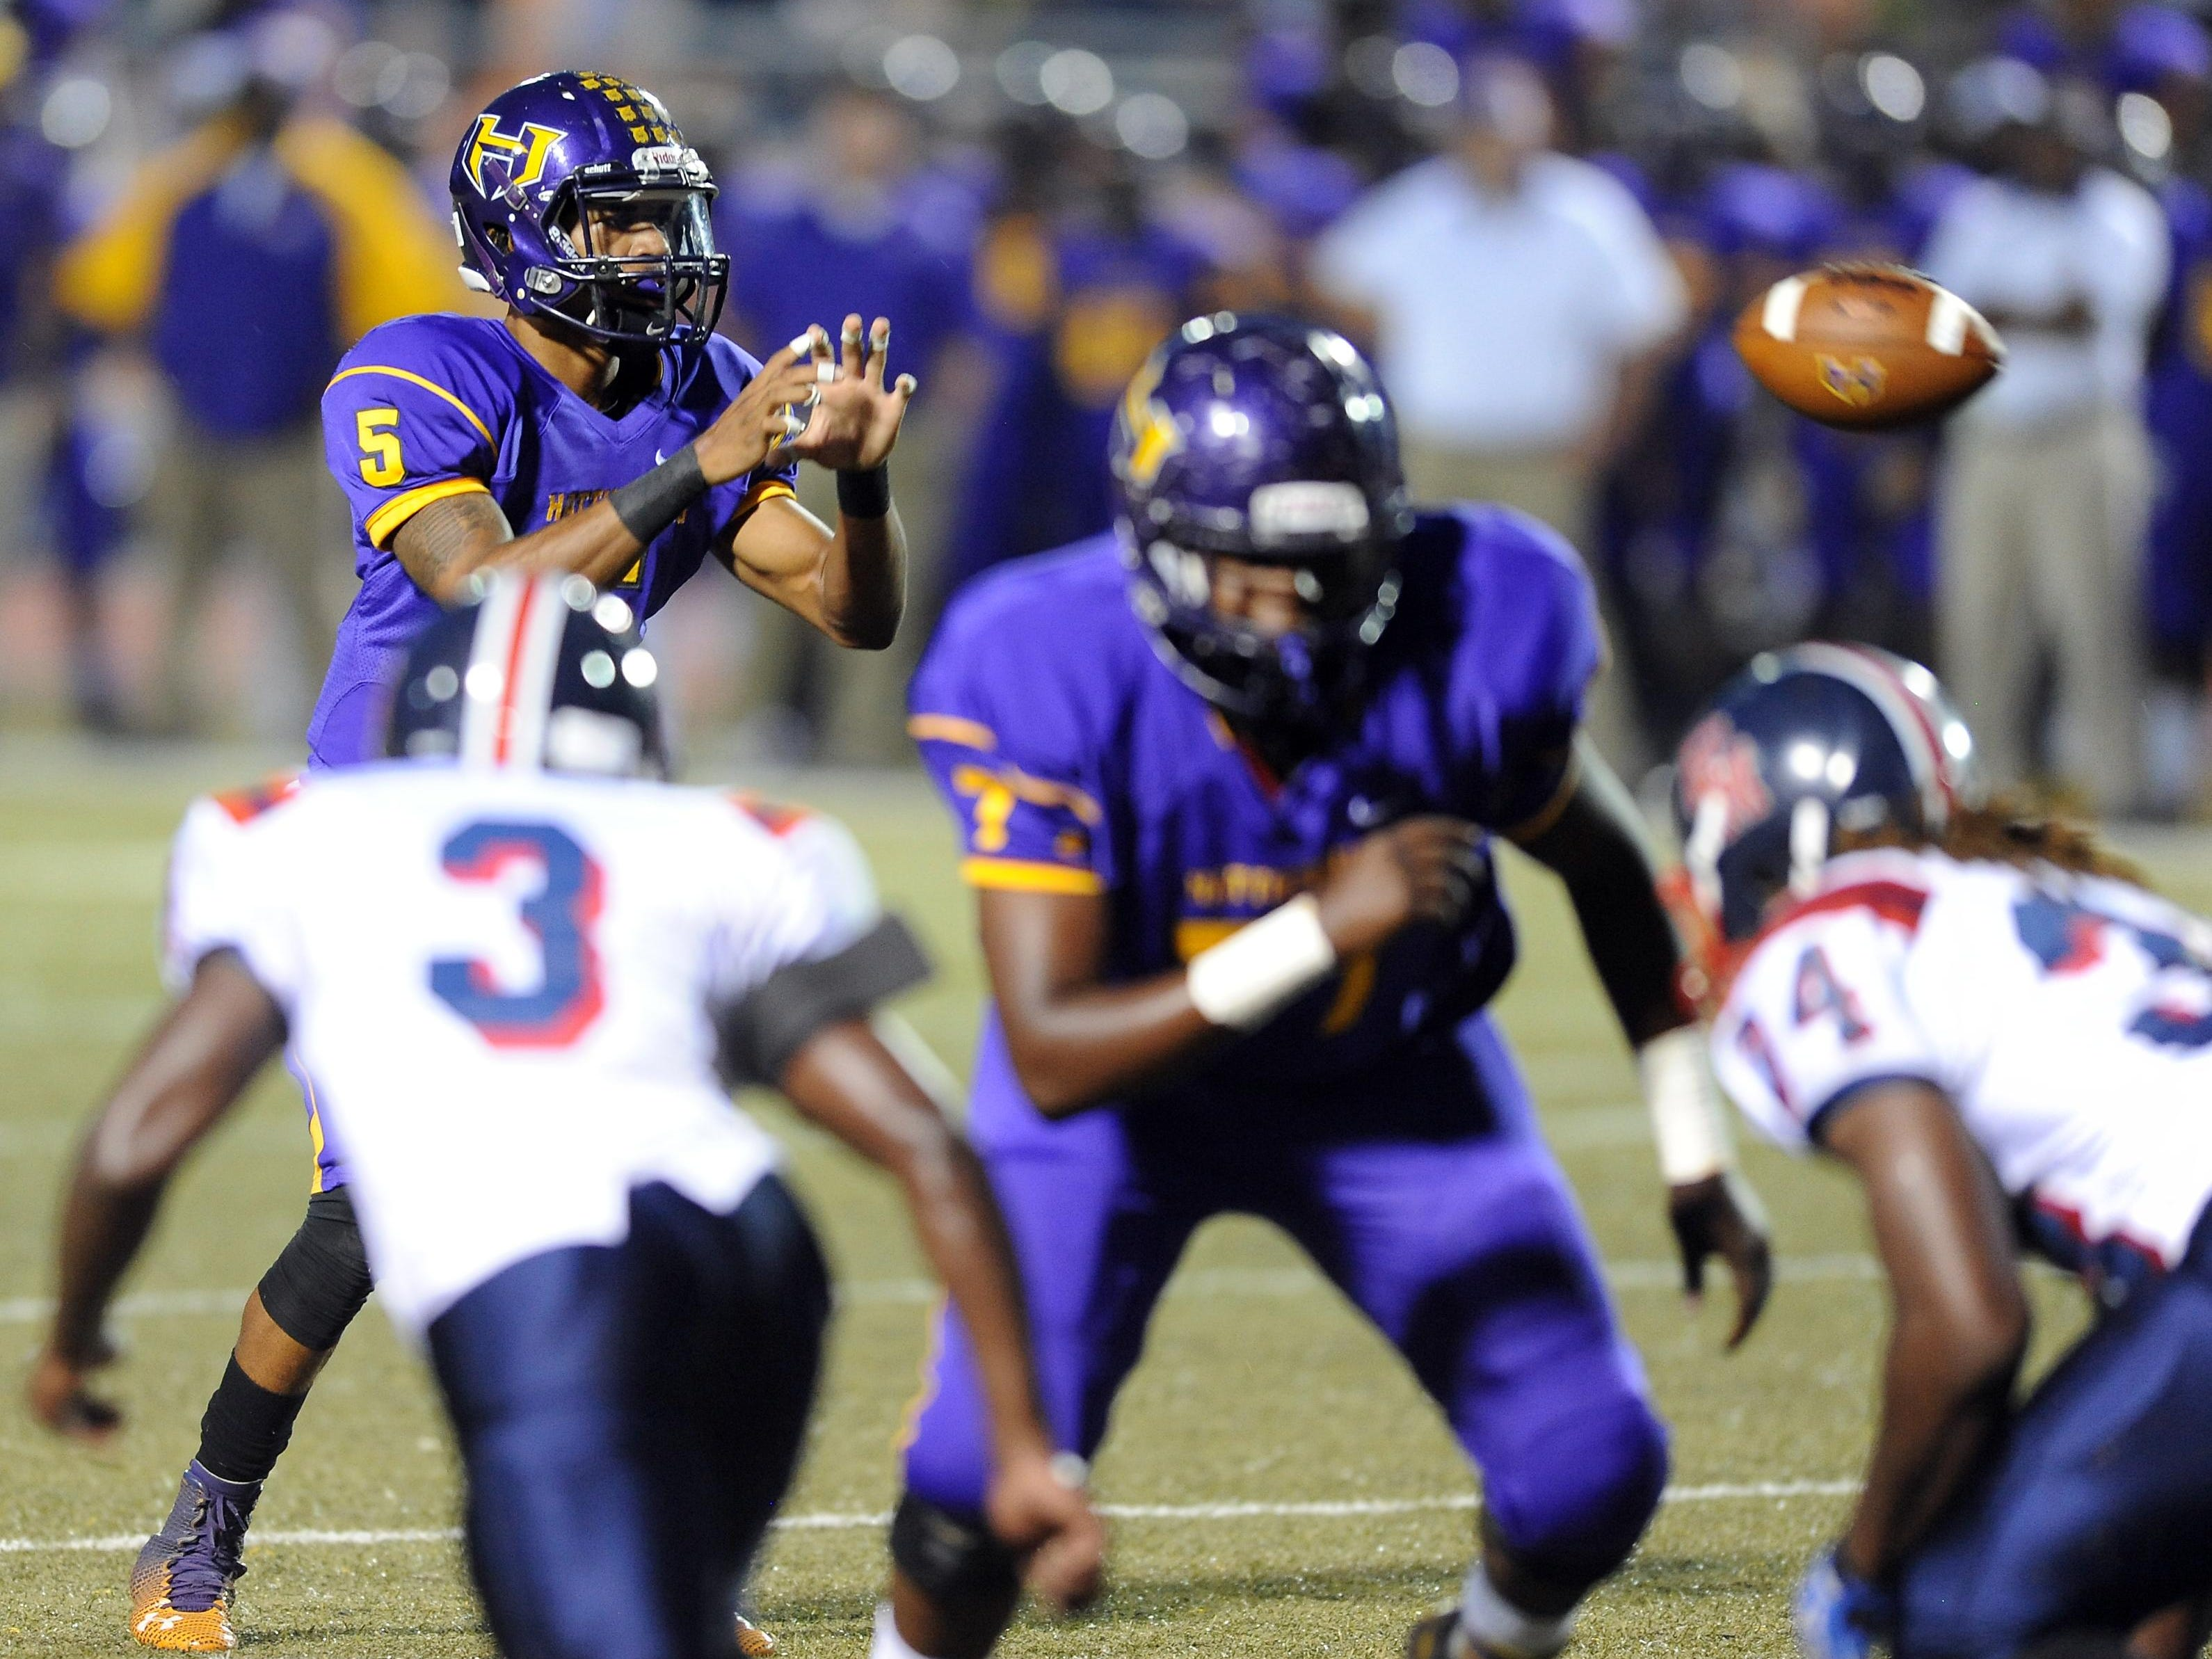 Hattiesburg quarterback Julian Conner (5) led the Tigers to a 38-0 win over East Marion on Thursday. The Tigers are 4-0 for the first time since 2012. Conner passed for 131 yards and a TD.